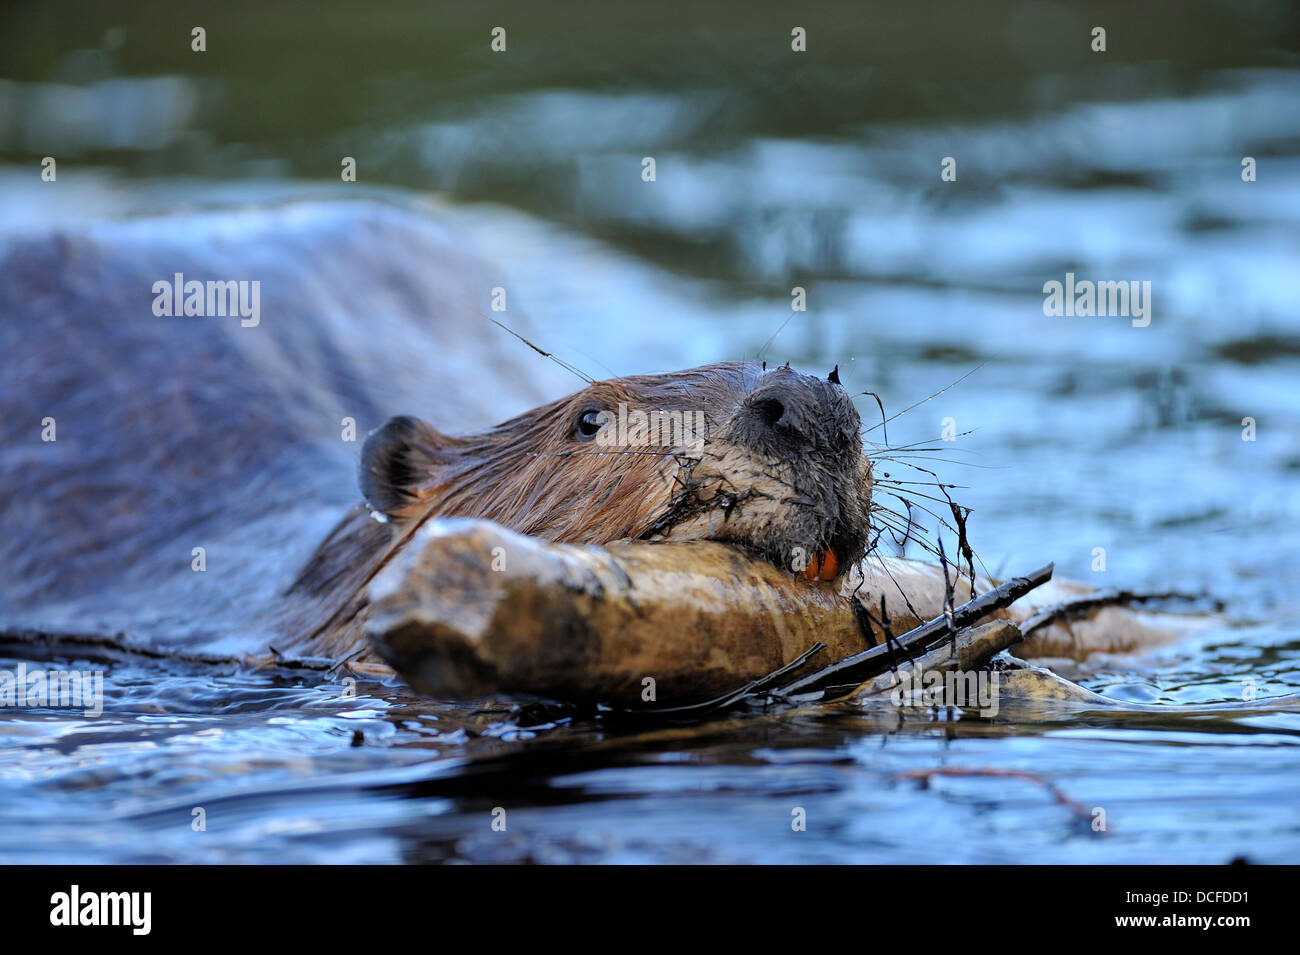 A beaver 'Castor canadenis' swimming carrying a stick in his mouth - Stock Image